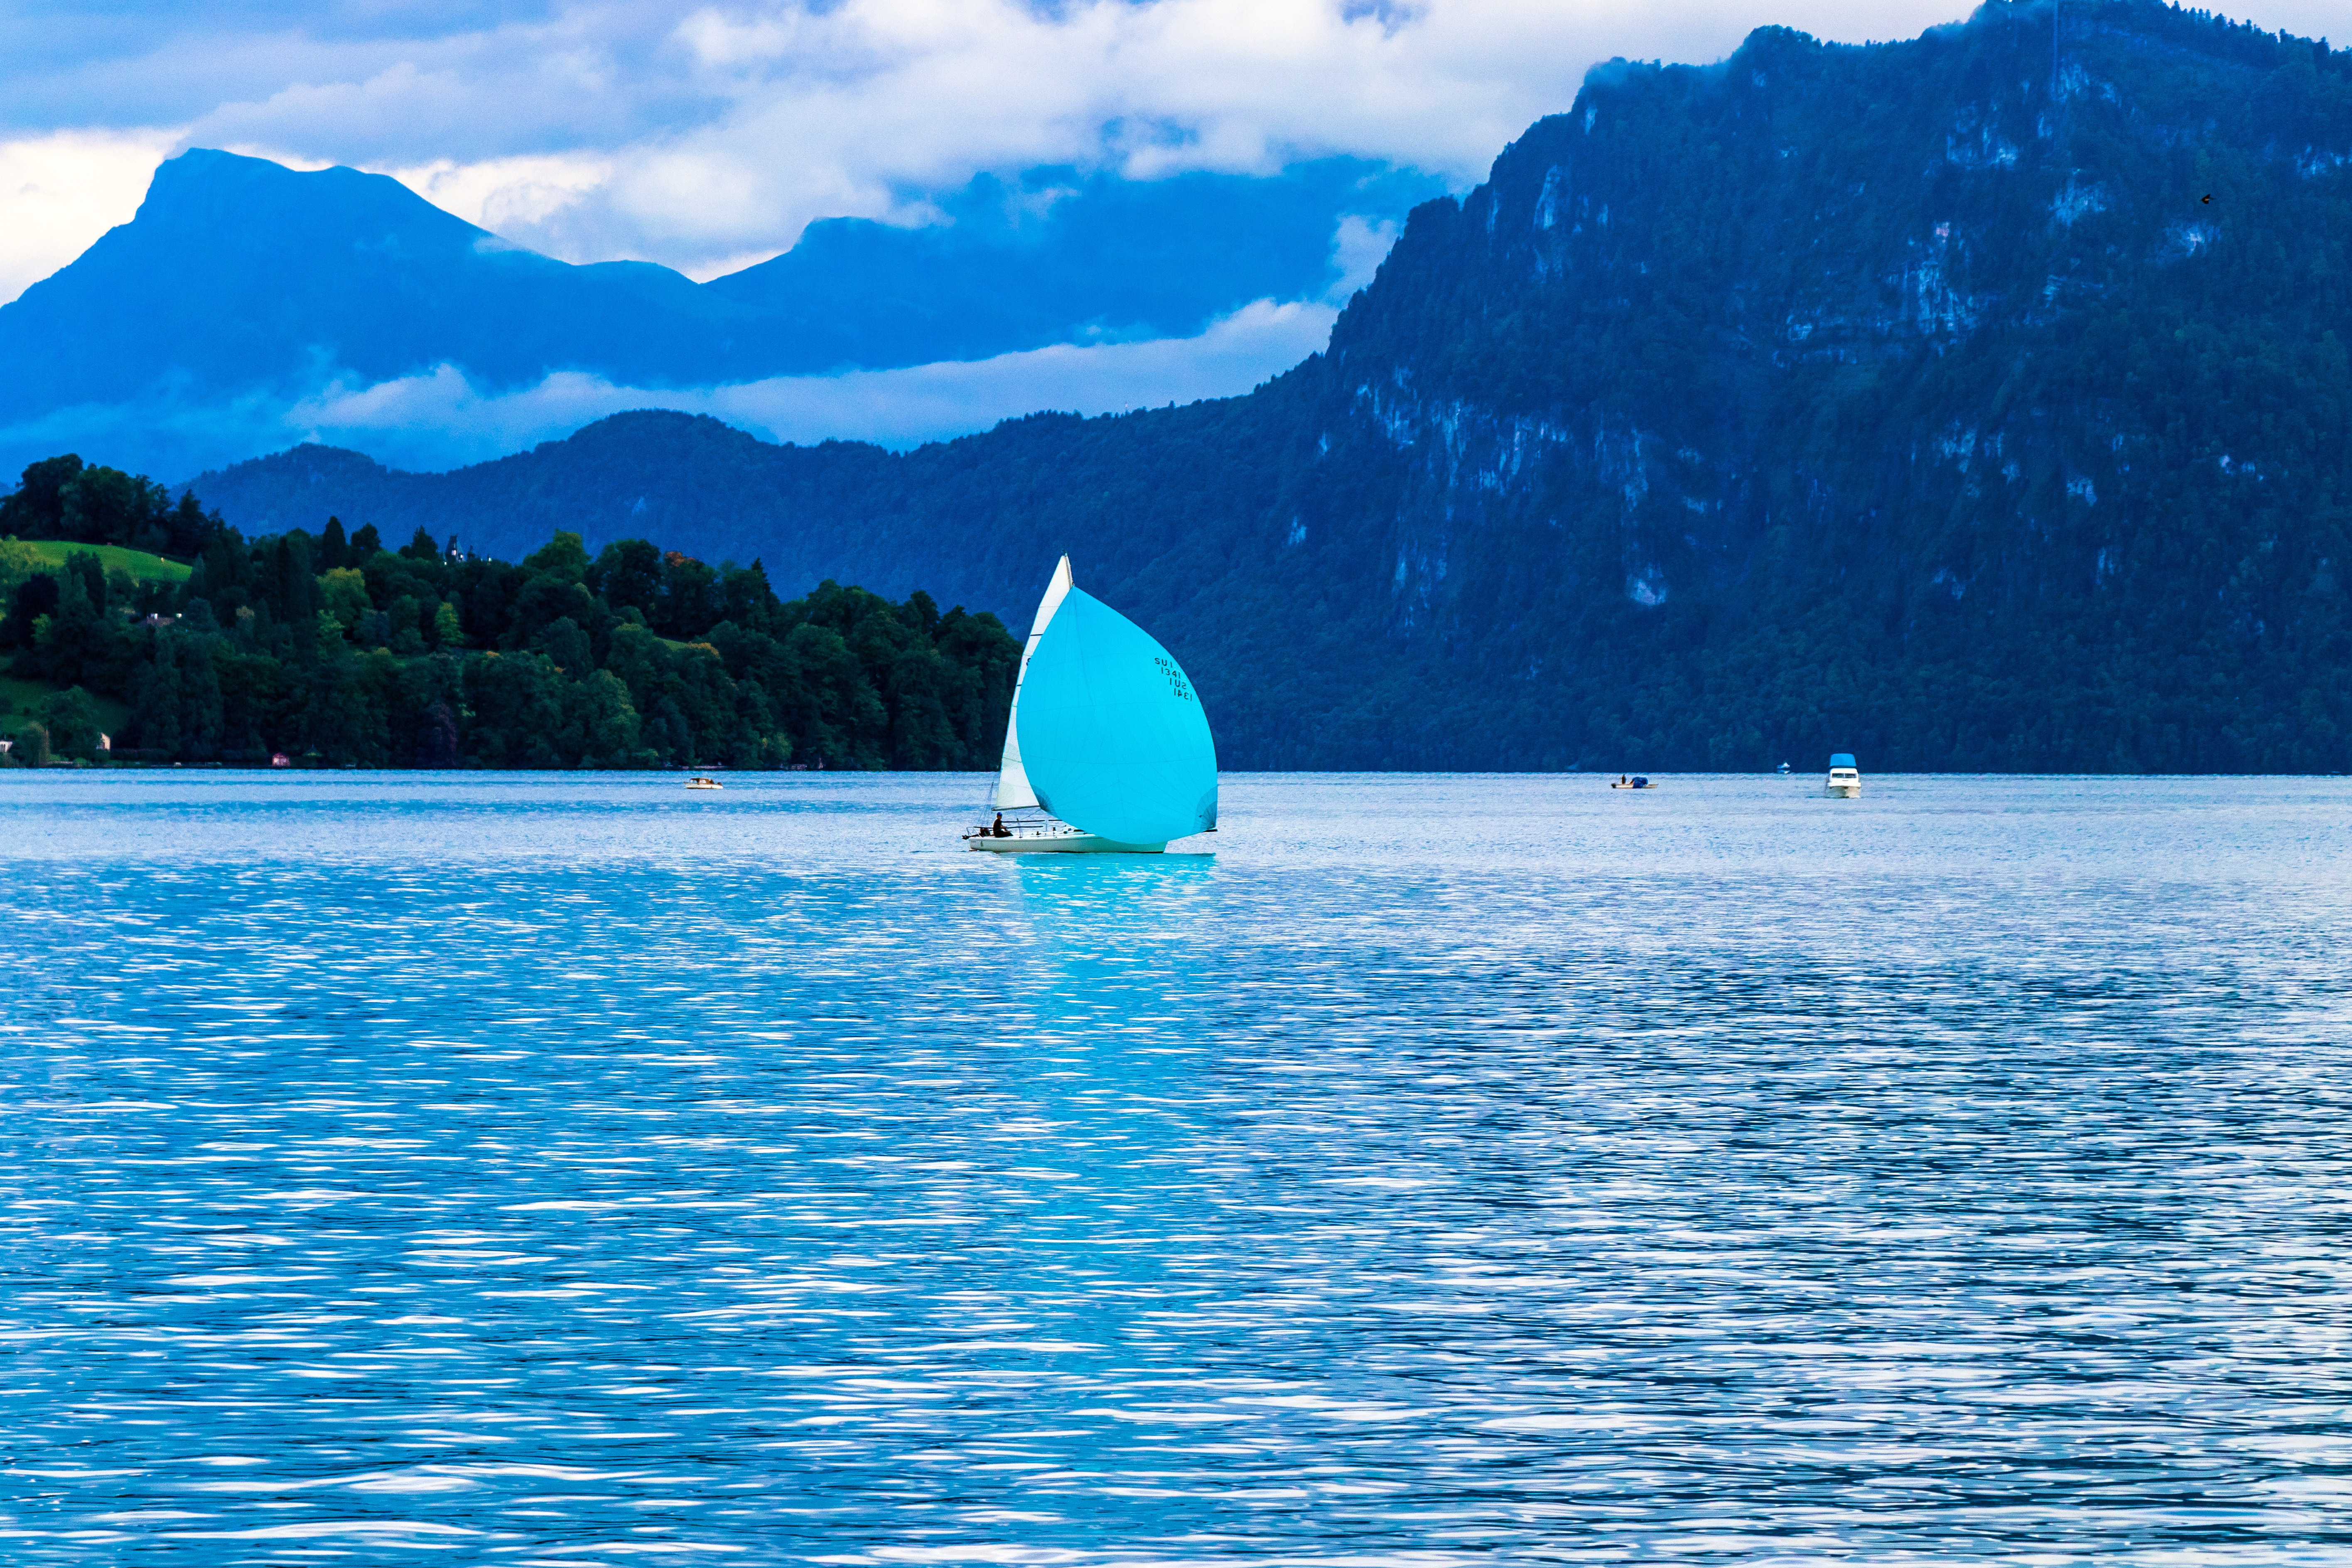 Sailing boat on body of water photo